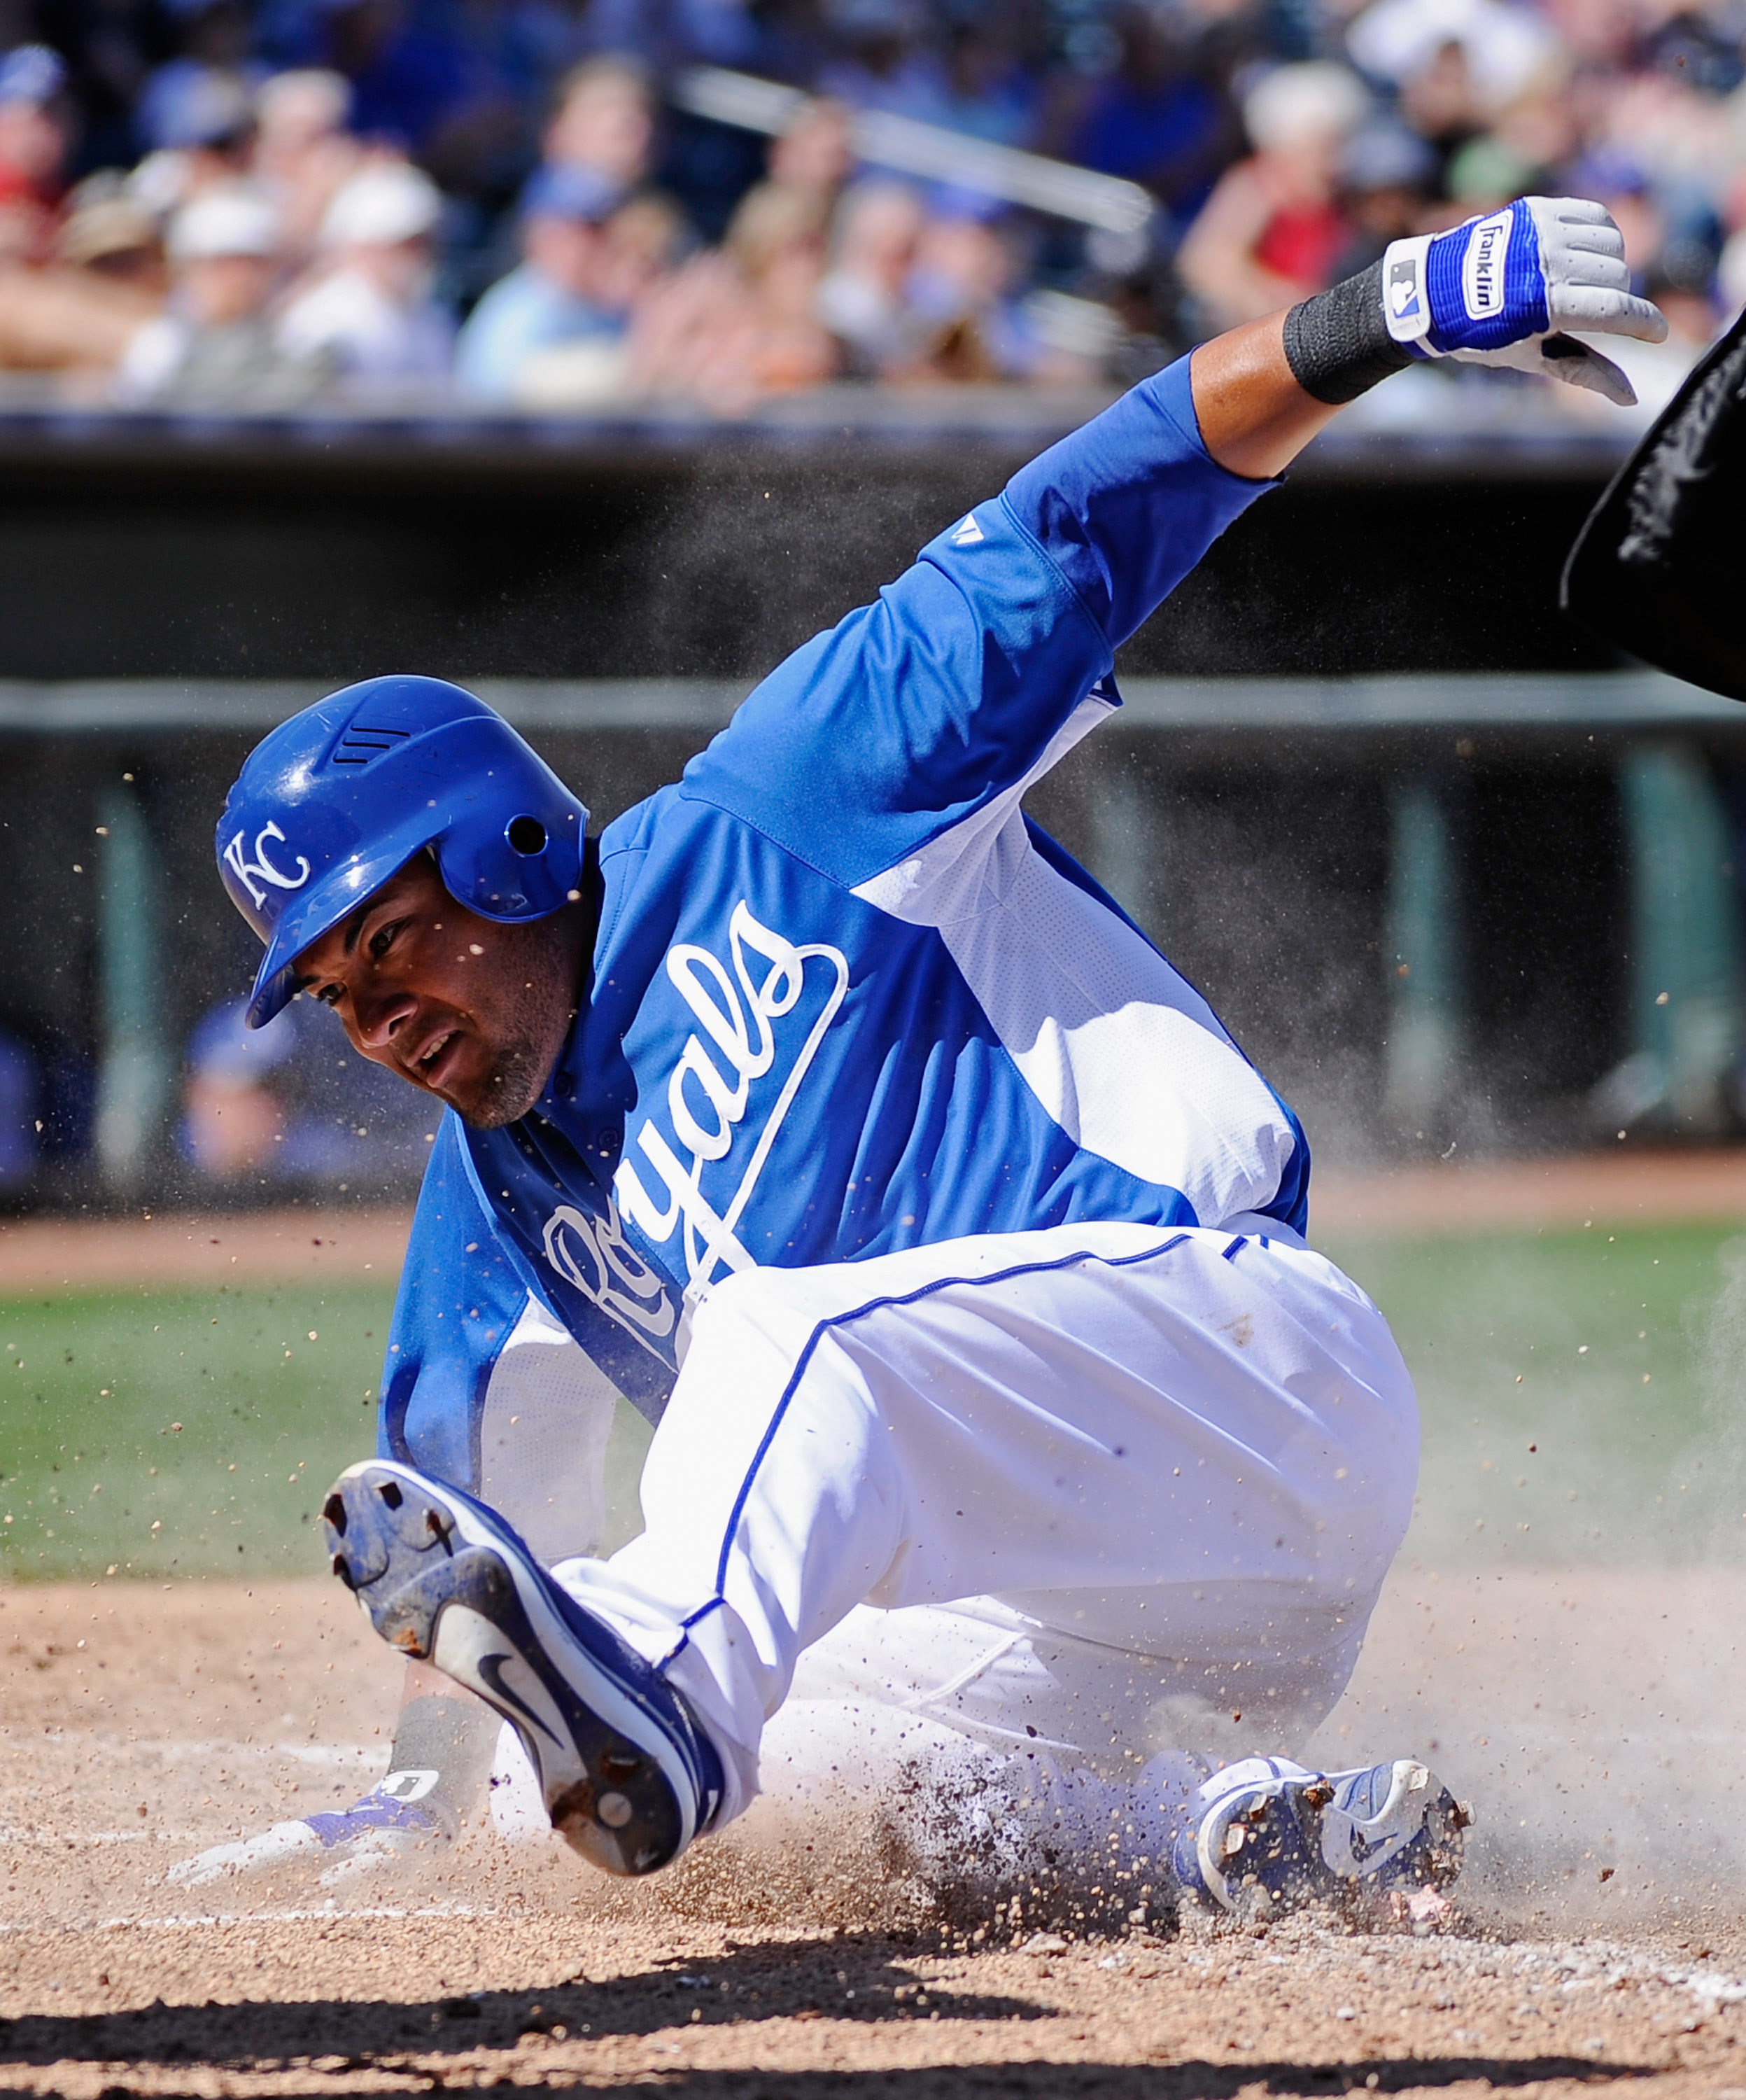 SURPRISE, AZ - MARCH 12:  Melky Cabrera #53 of the Kansas City Royals slides at home plate to score a run during the fourth inning of the spring training baseball game against the Los Angeles Dodgers at Surprise Stadium on March 12, 2011 in Surprise, Ariz